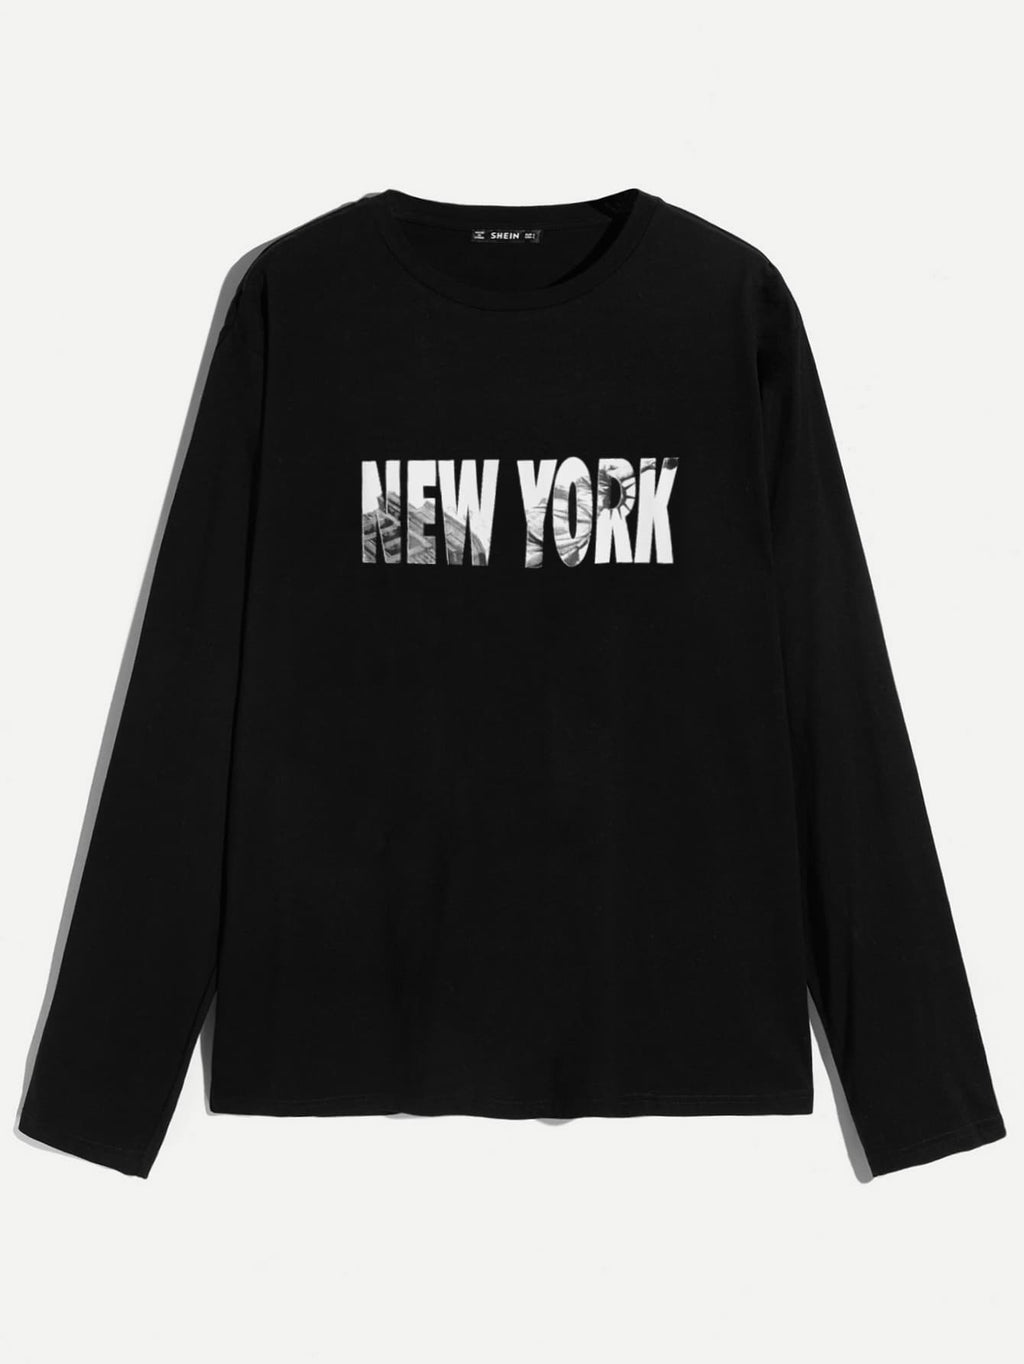 NY Letter Print, long-sleeved Tee - mroutfit